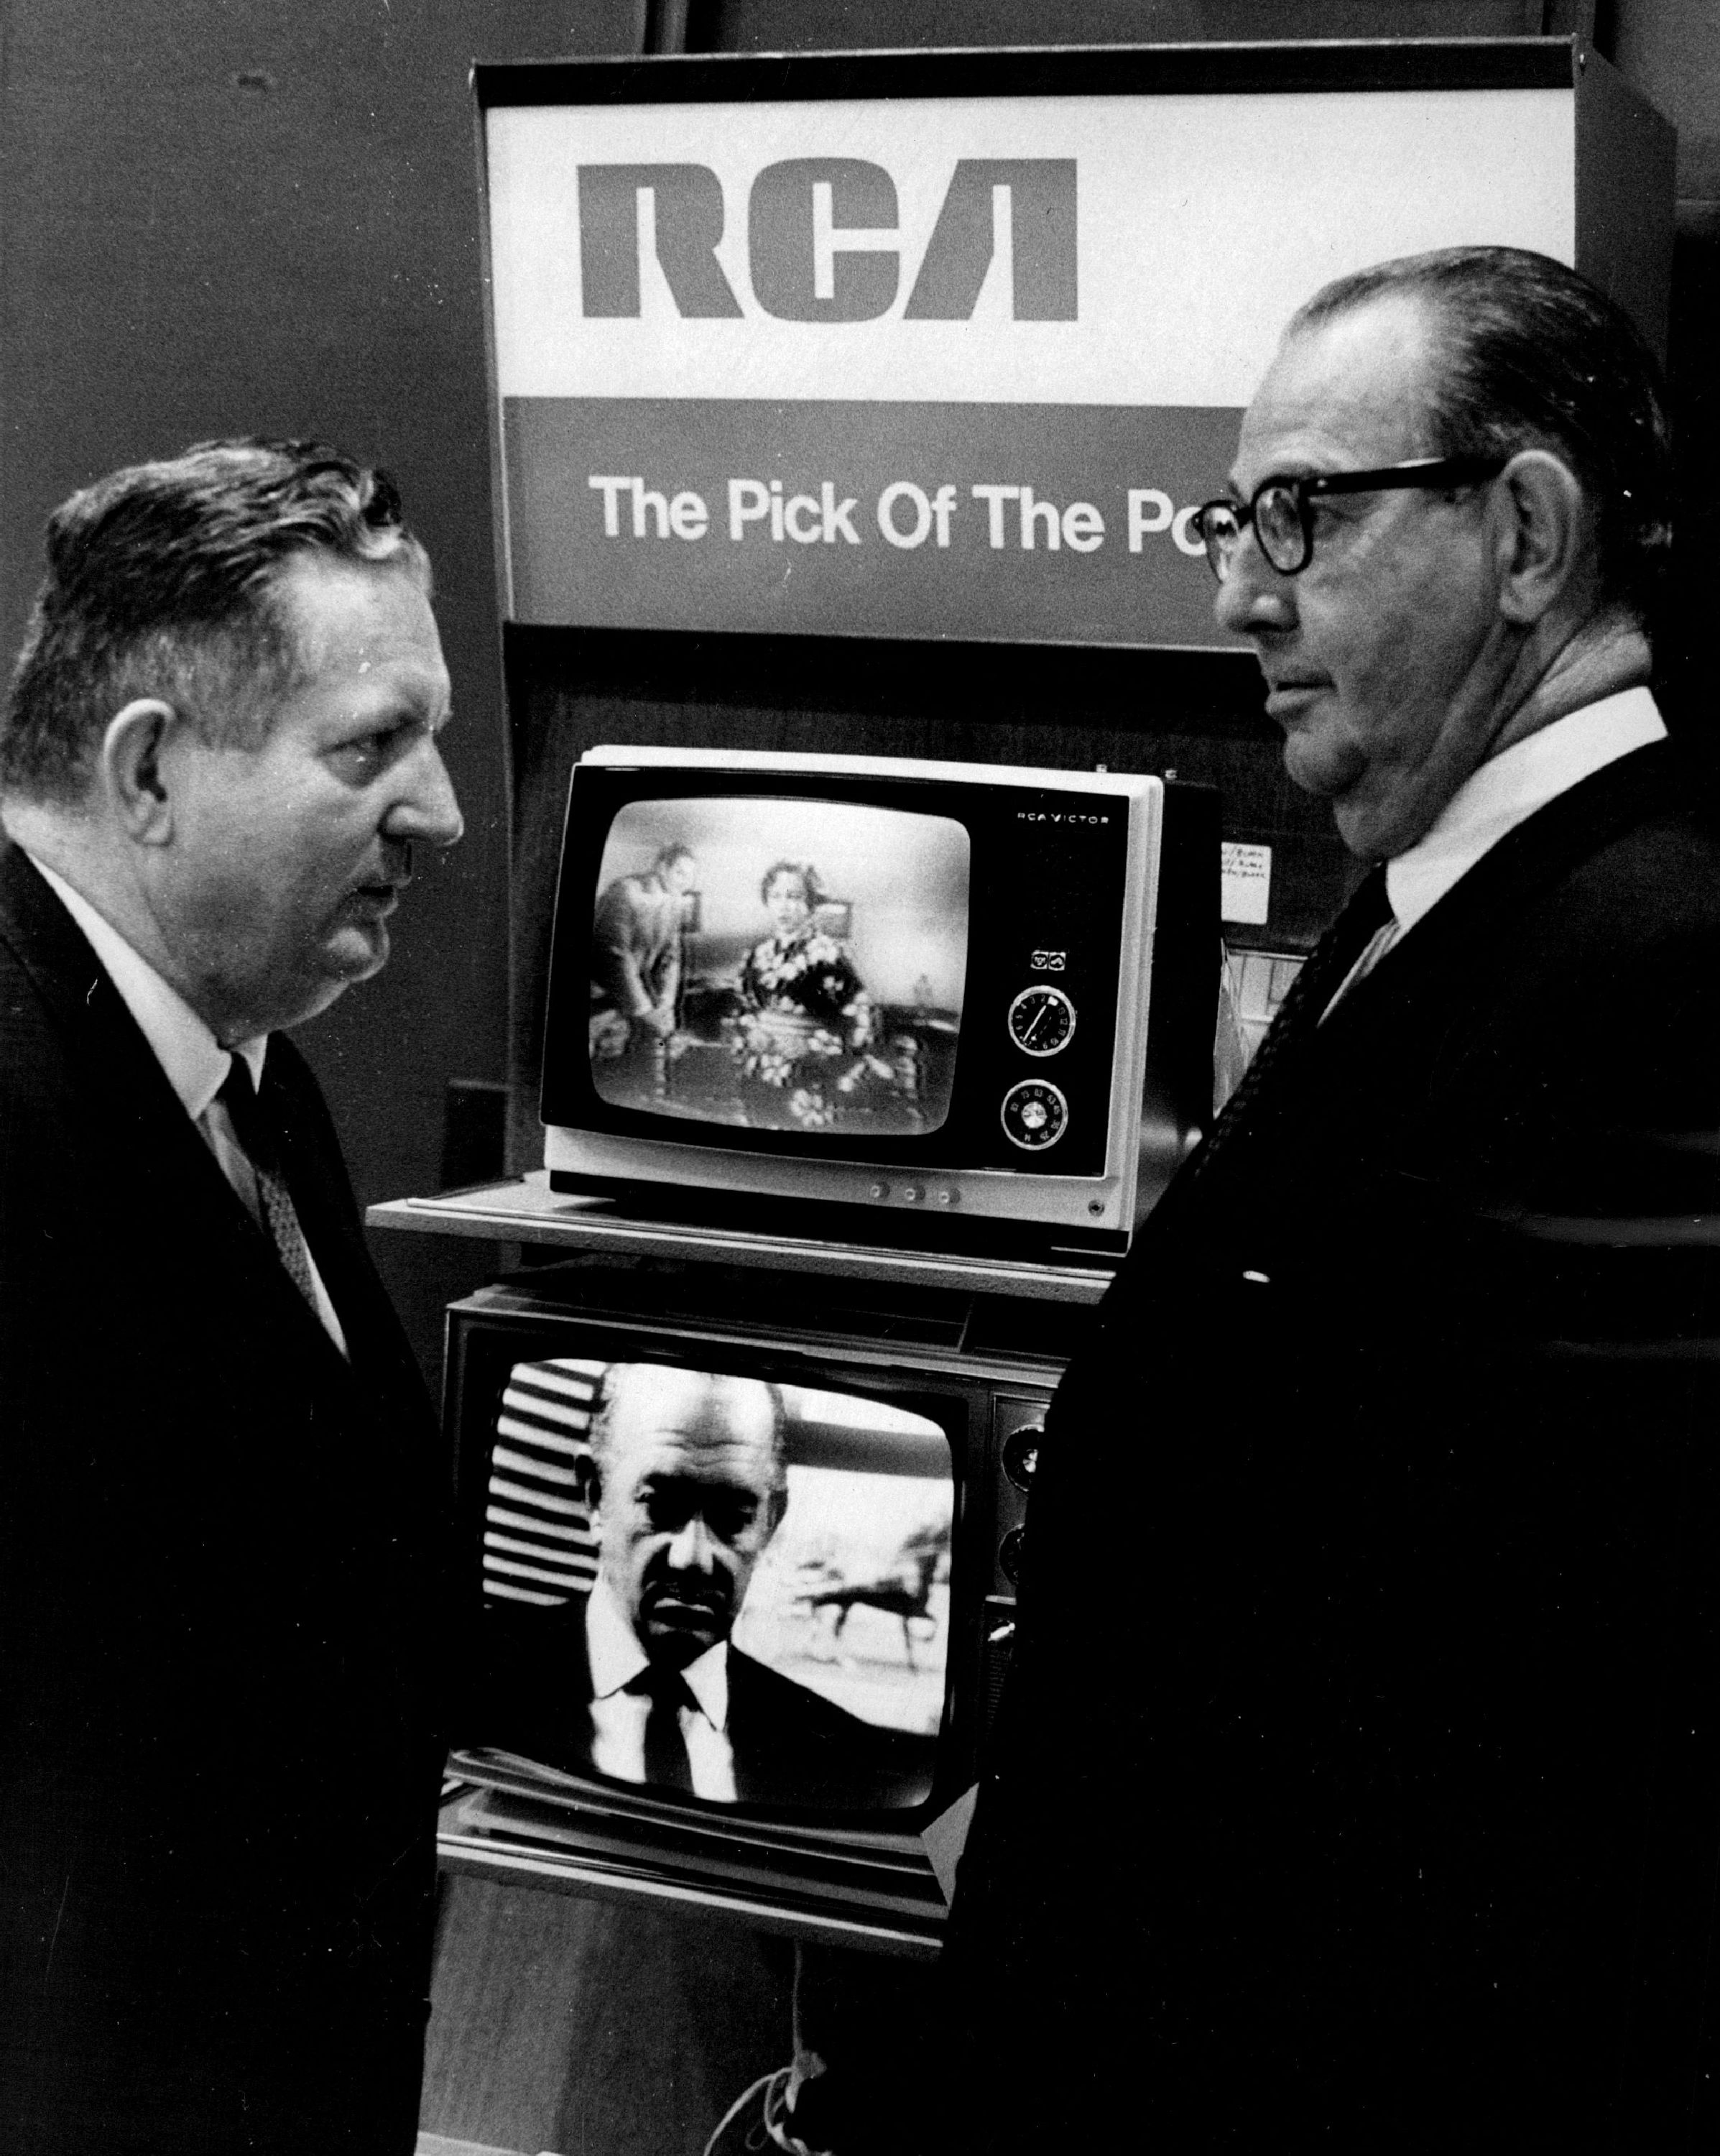 JUN 10 1968, JUN 12 1968; 1969 RCA Line Debuts; W. F. Martin, left, of Lefty Martin Appliance and TV